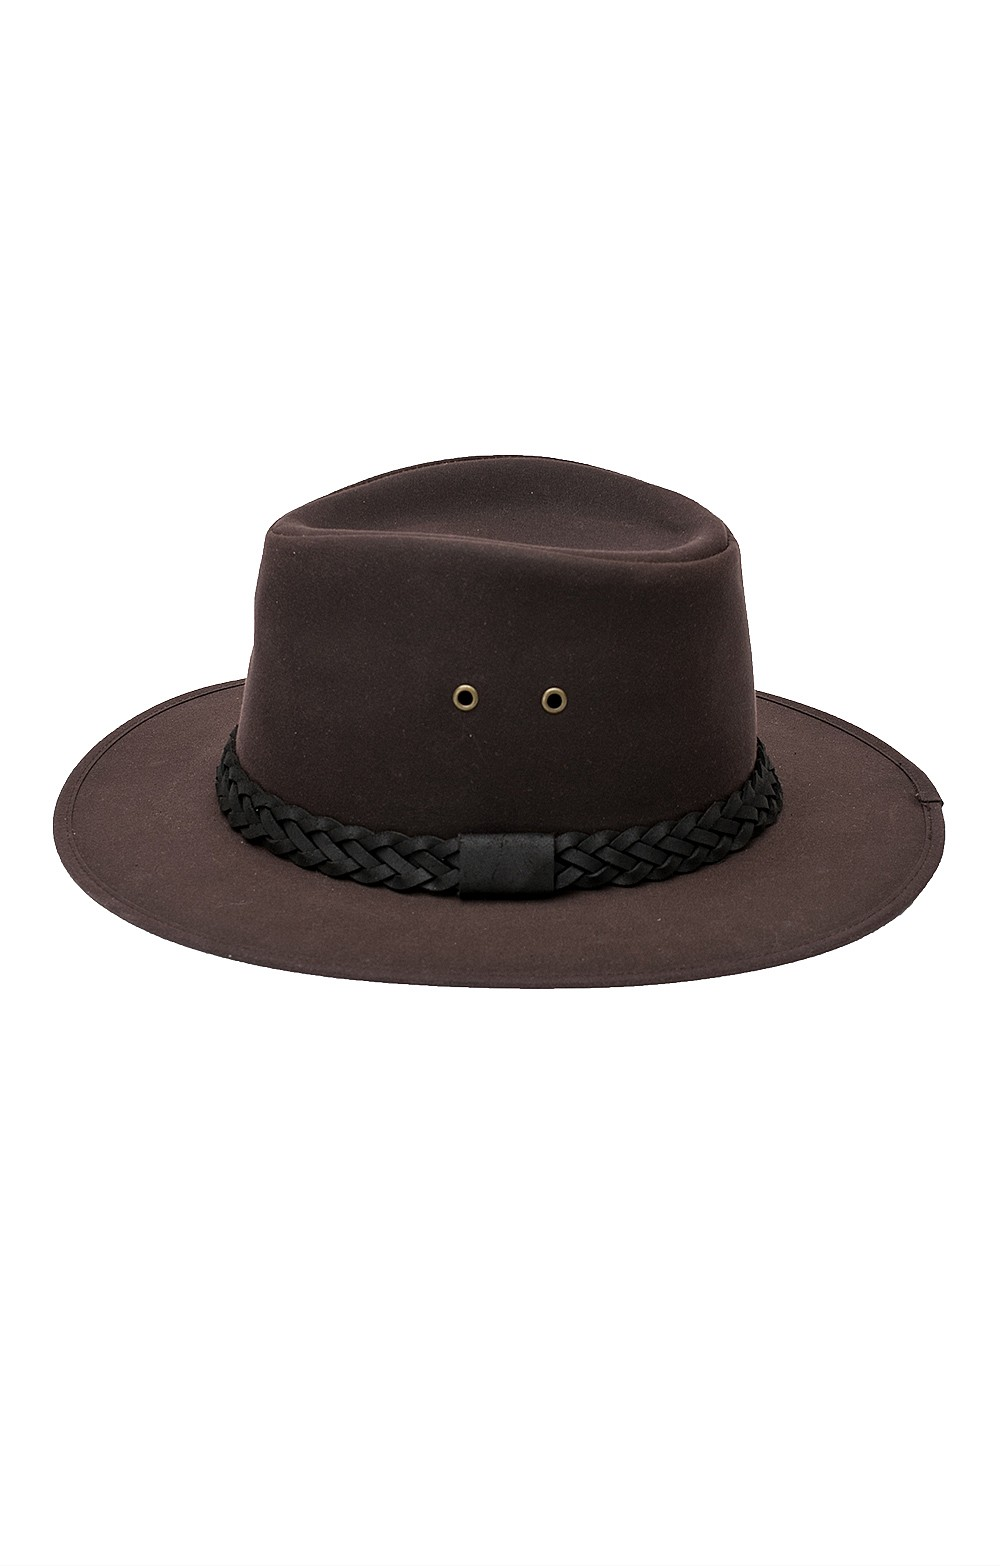 df12a8e7 Barbour Wax Bushman Hat - House of Bruar